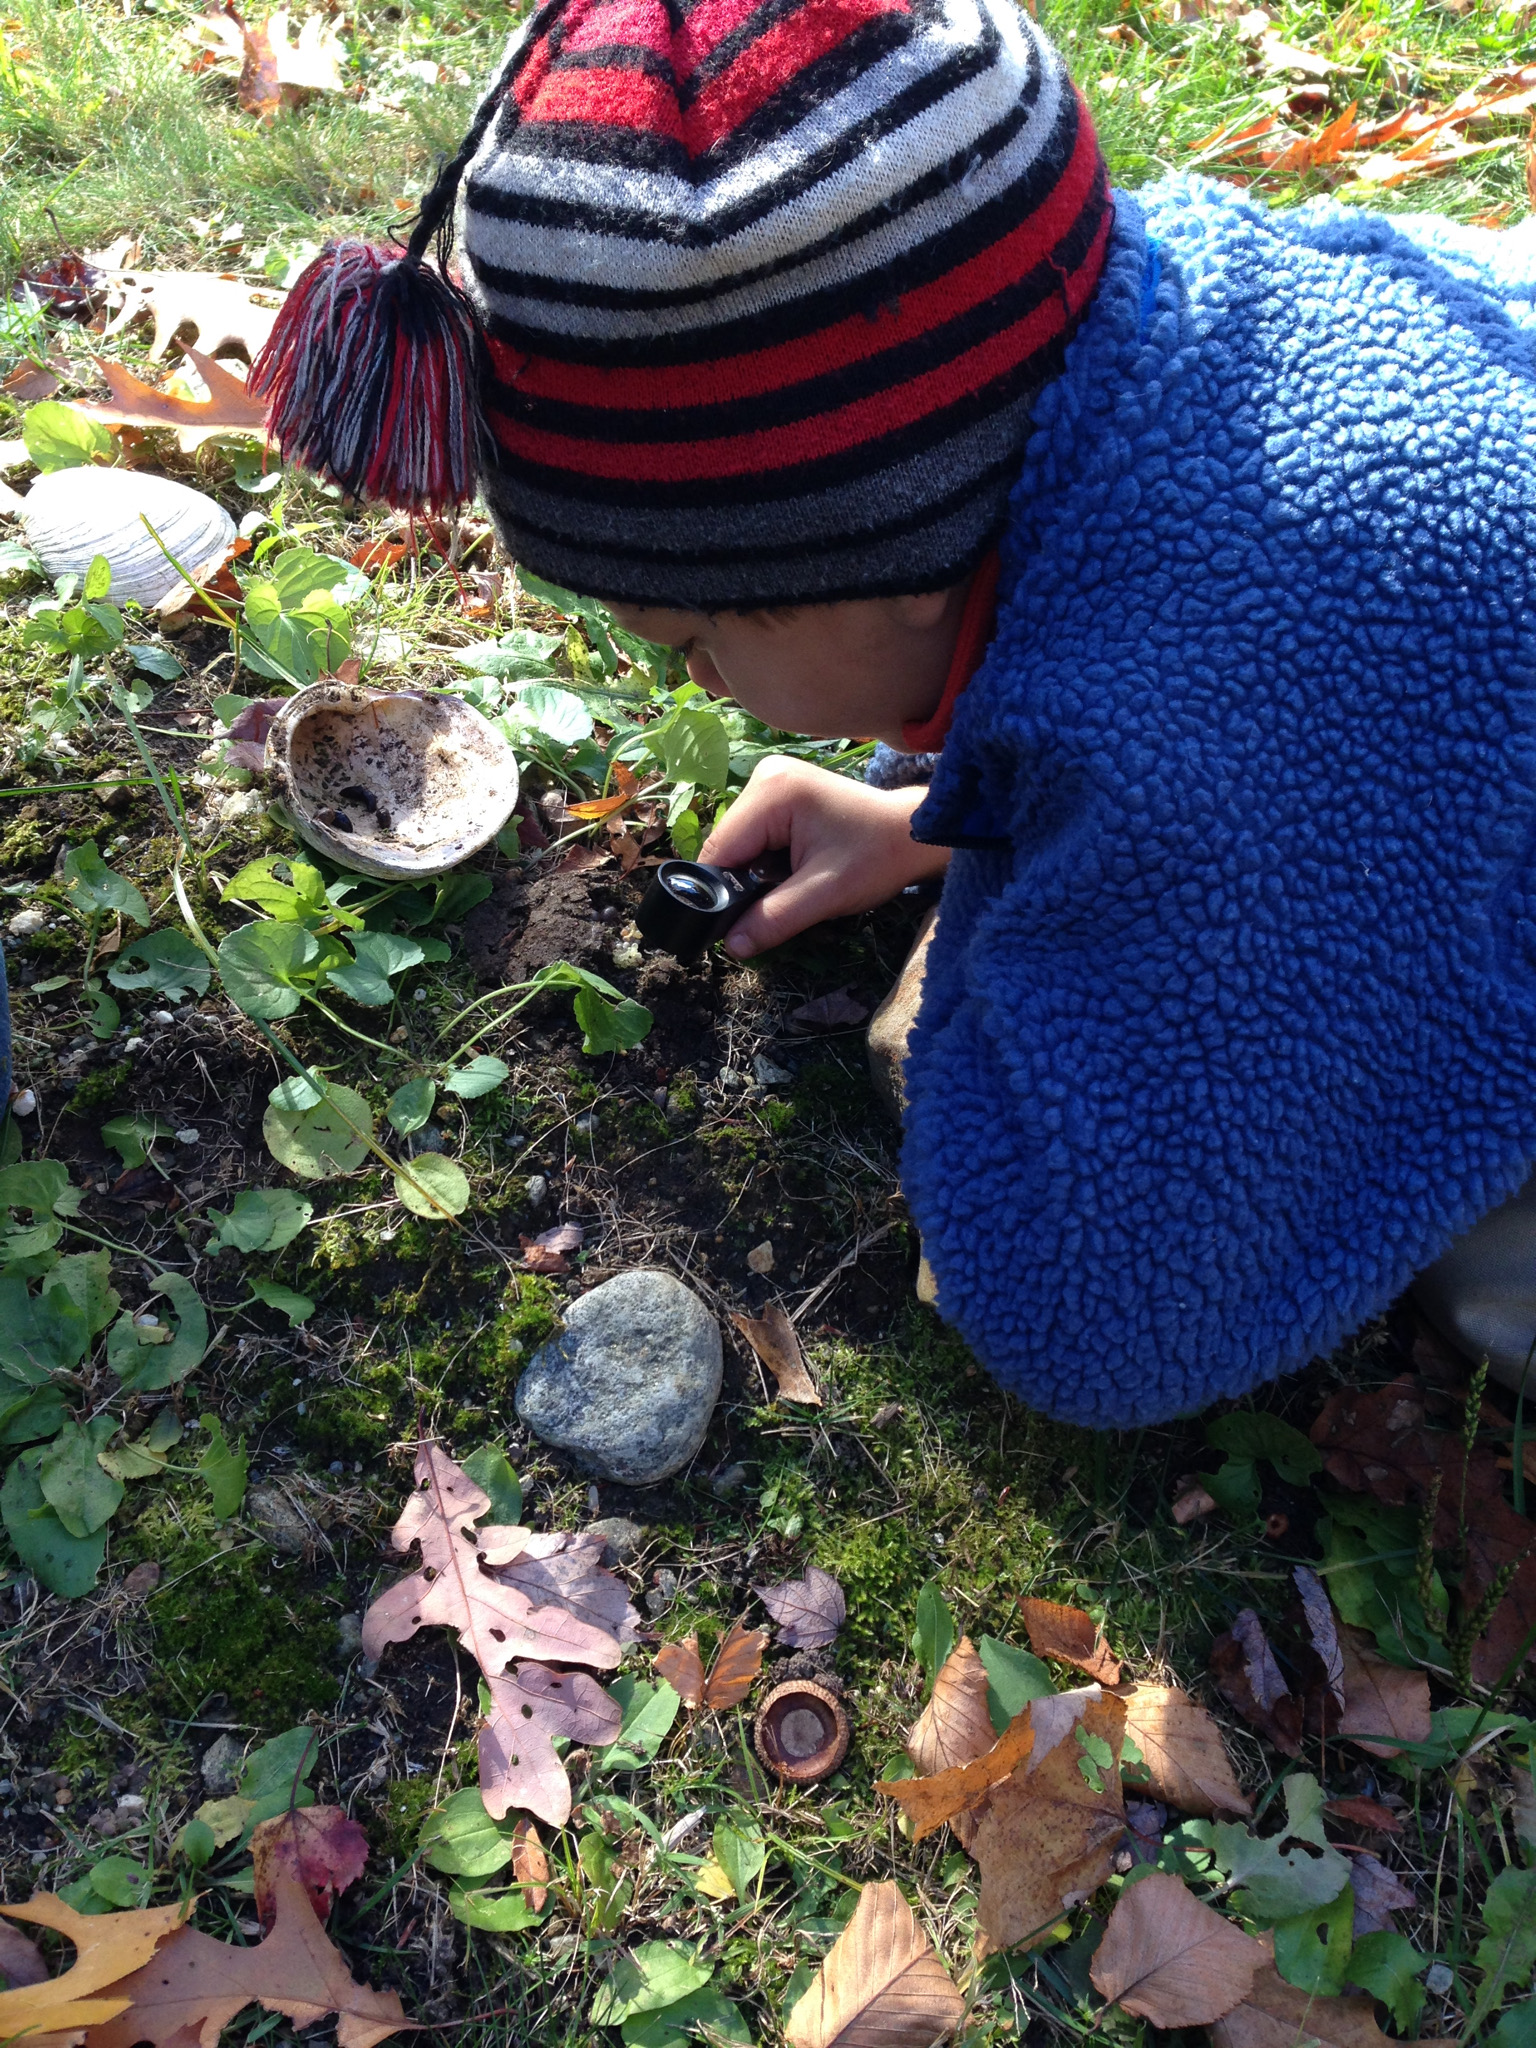 Kunsang and Silas discovered some eggs,. After close inspection, they noted adult and baby slugs close by.